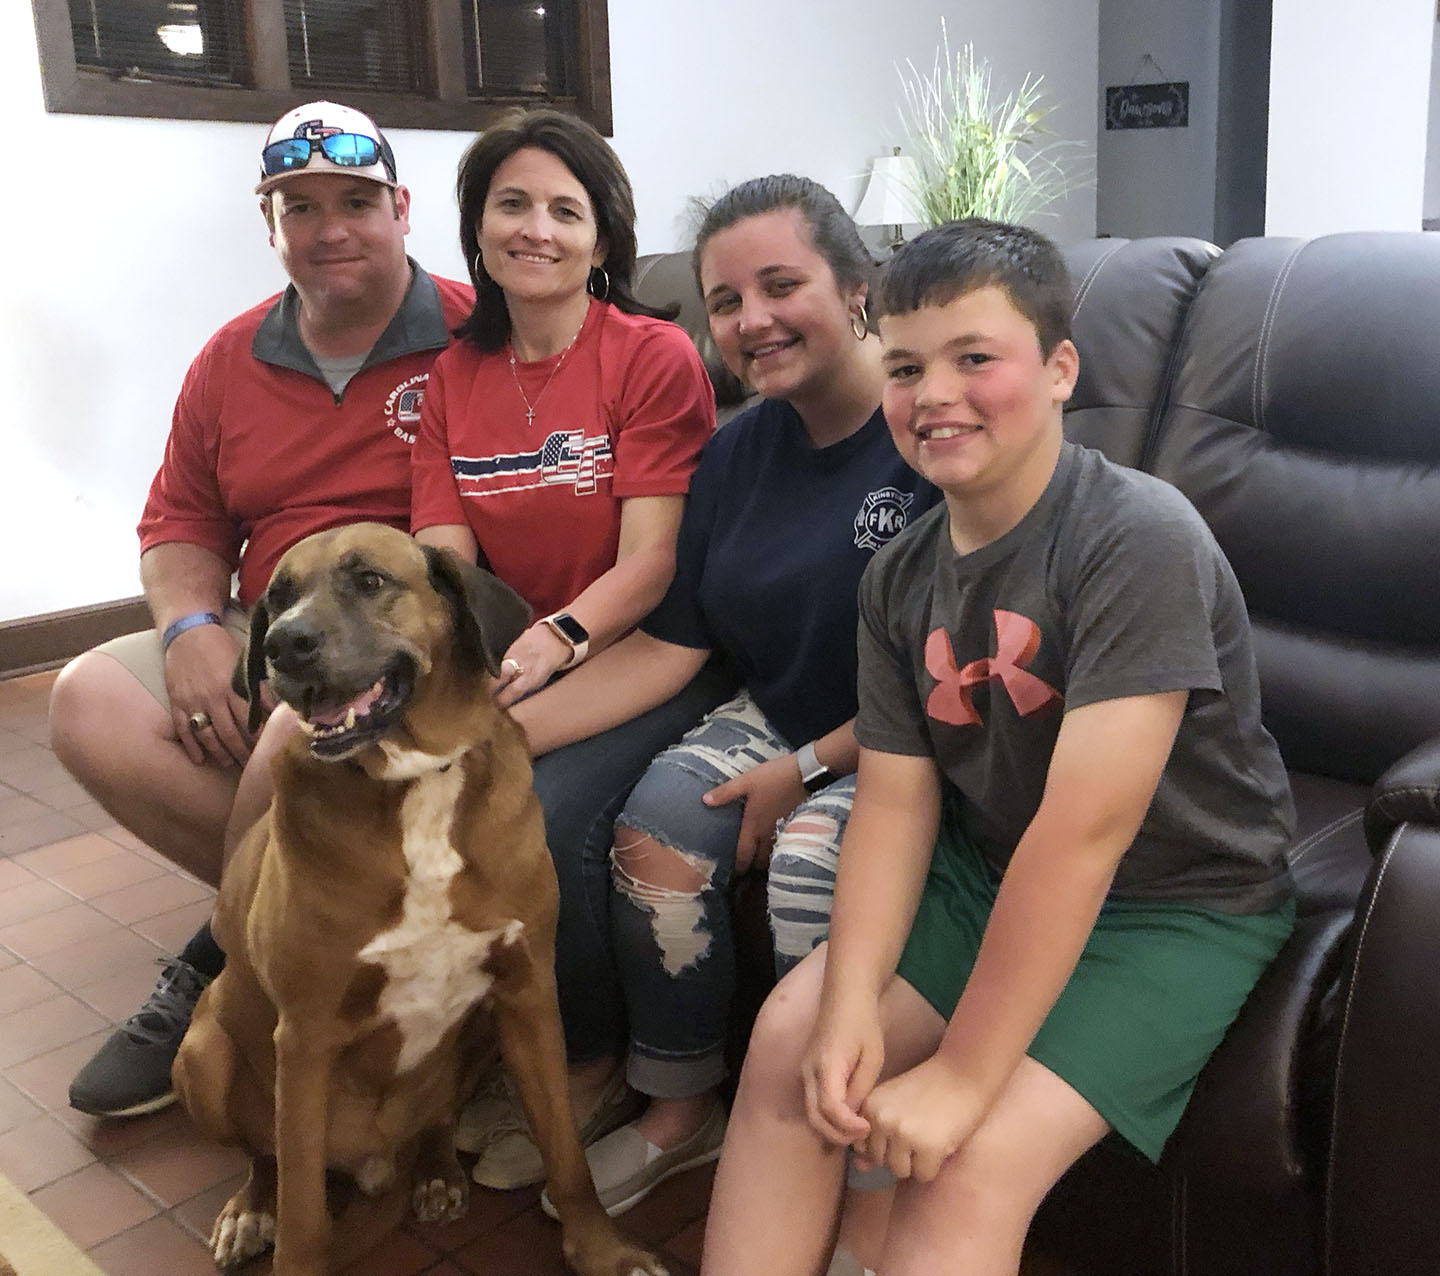 Lenoir County Sheriff's Office Maj. Ryan Dawson, left, poses with his family at their home Sunday night. They are, from left, his wife Beverly Dawson, their daughter Riley, 18, and son Ashton, 11, along with their beloved Clifford. Photo by Bryan Hanks / Neuse News